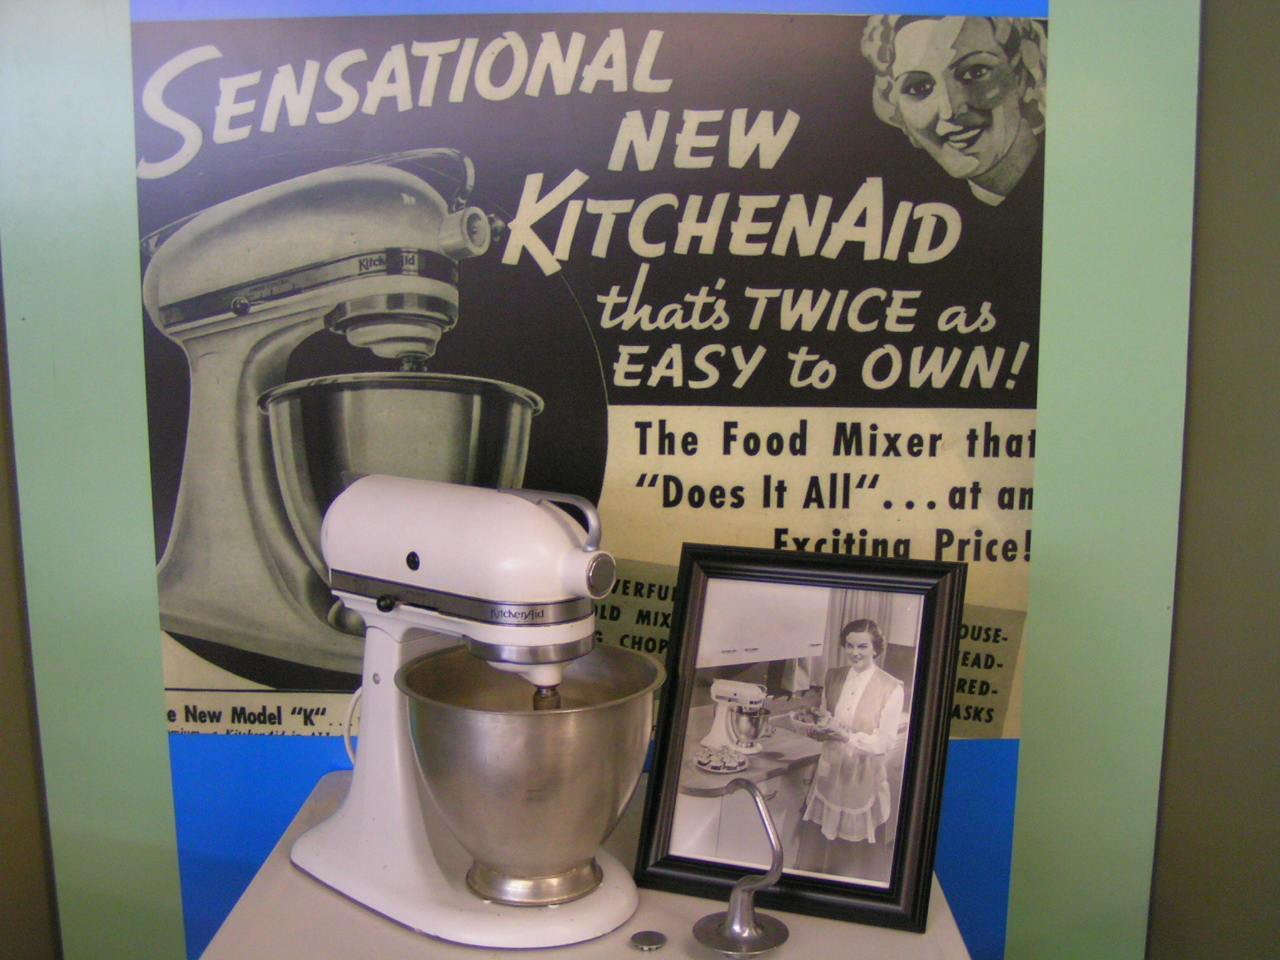 Excellent KitchenAid Mixer Models 1280 x 960 · 708 kB · jpeg